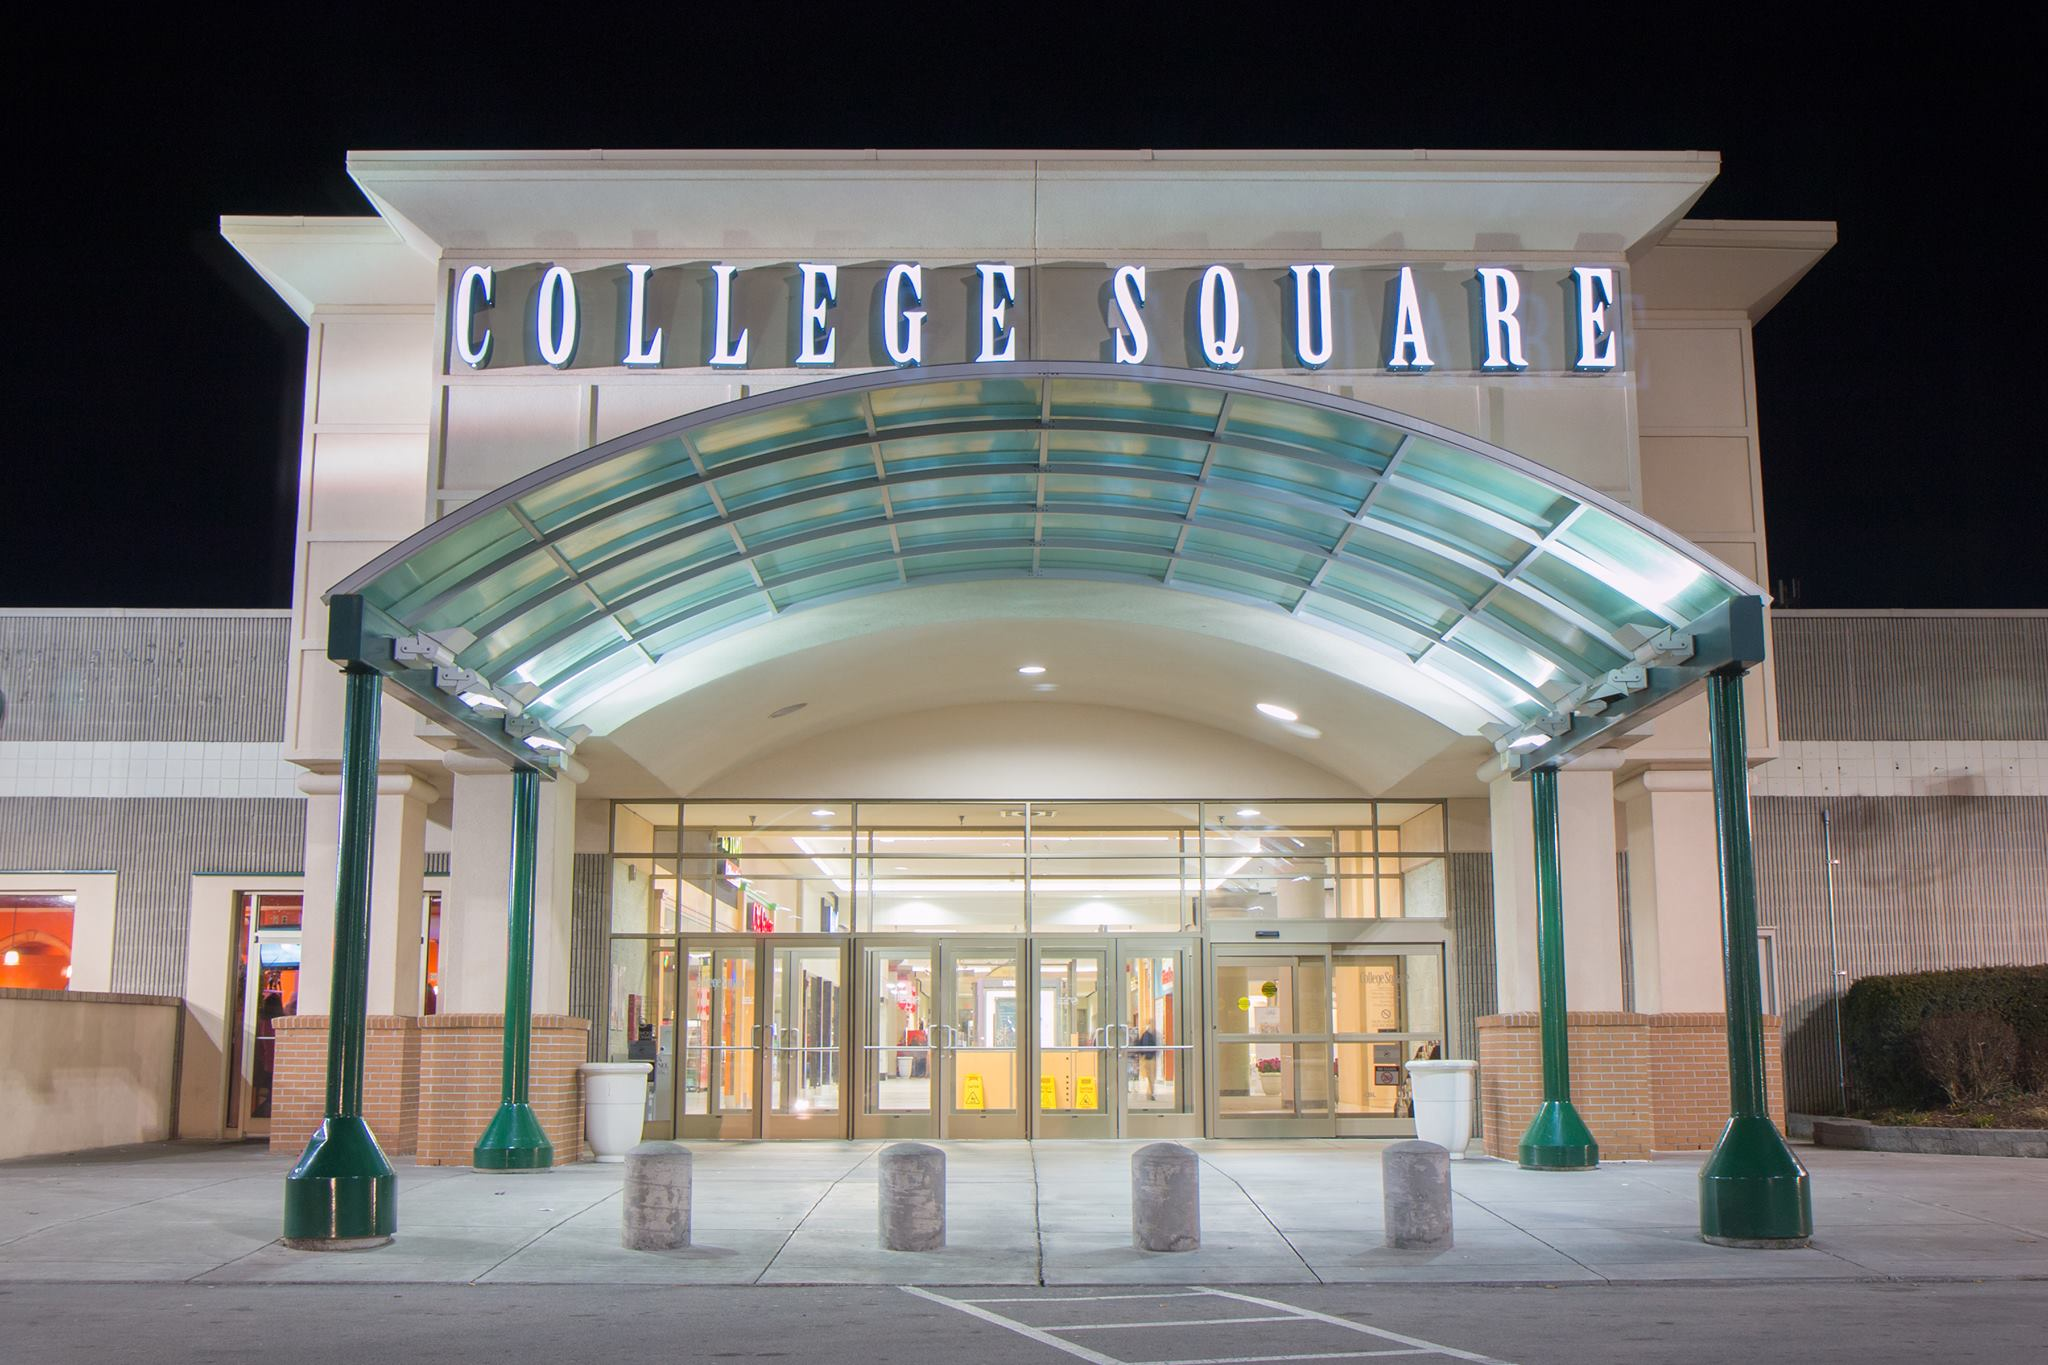 The College Square Mall in Morristown, Tenn.